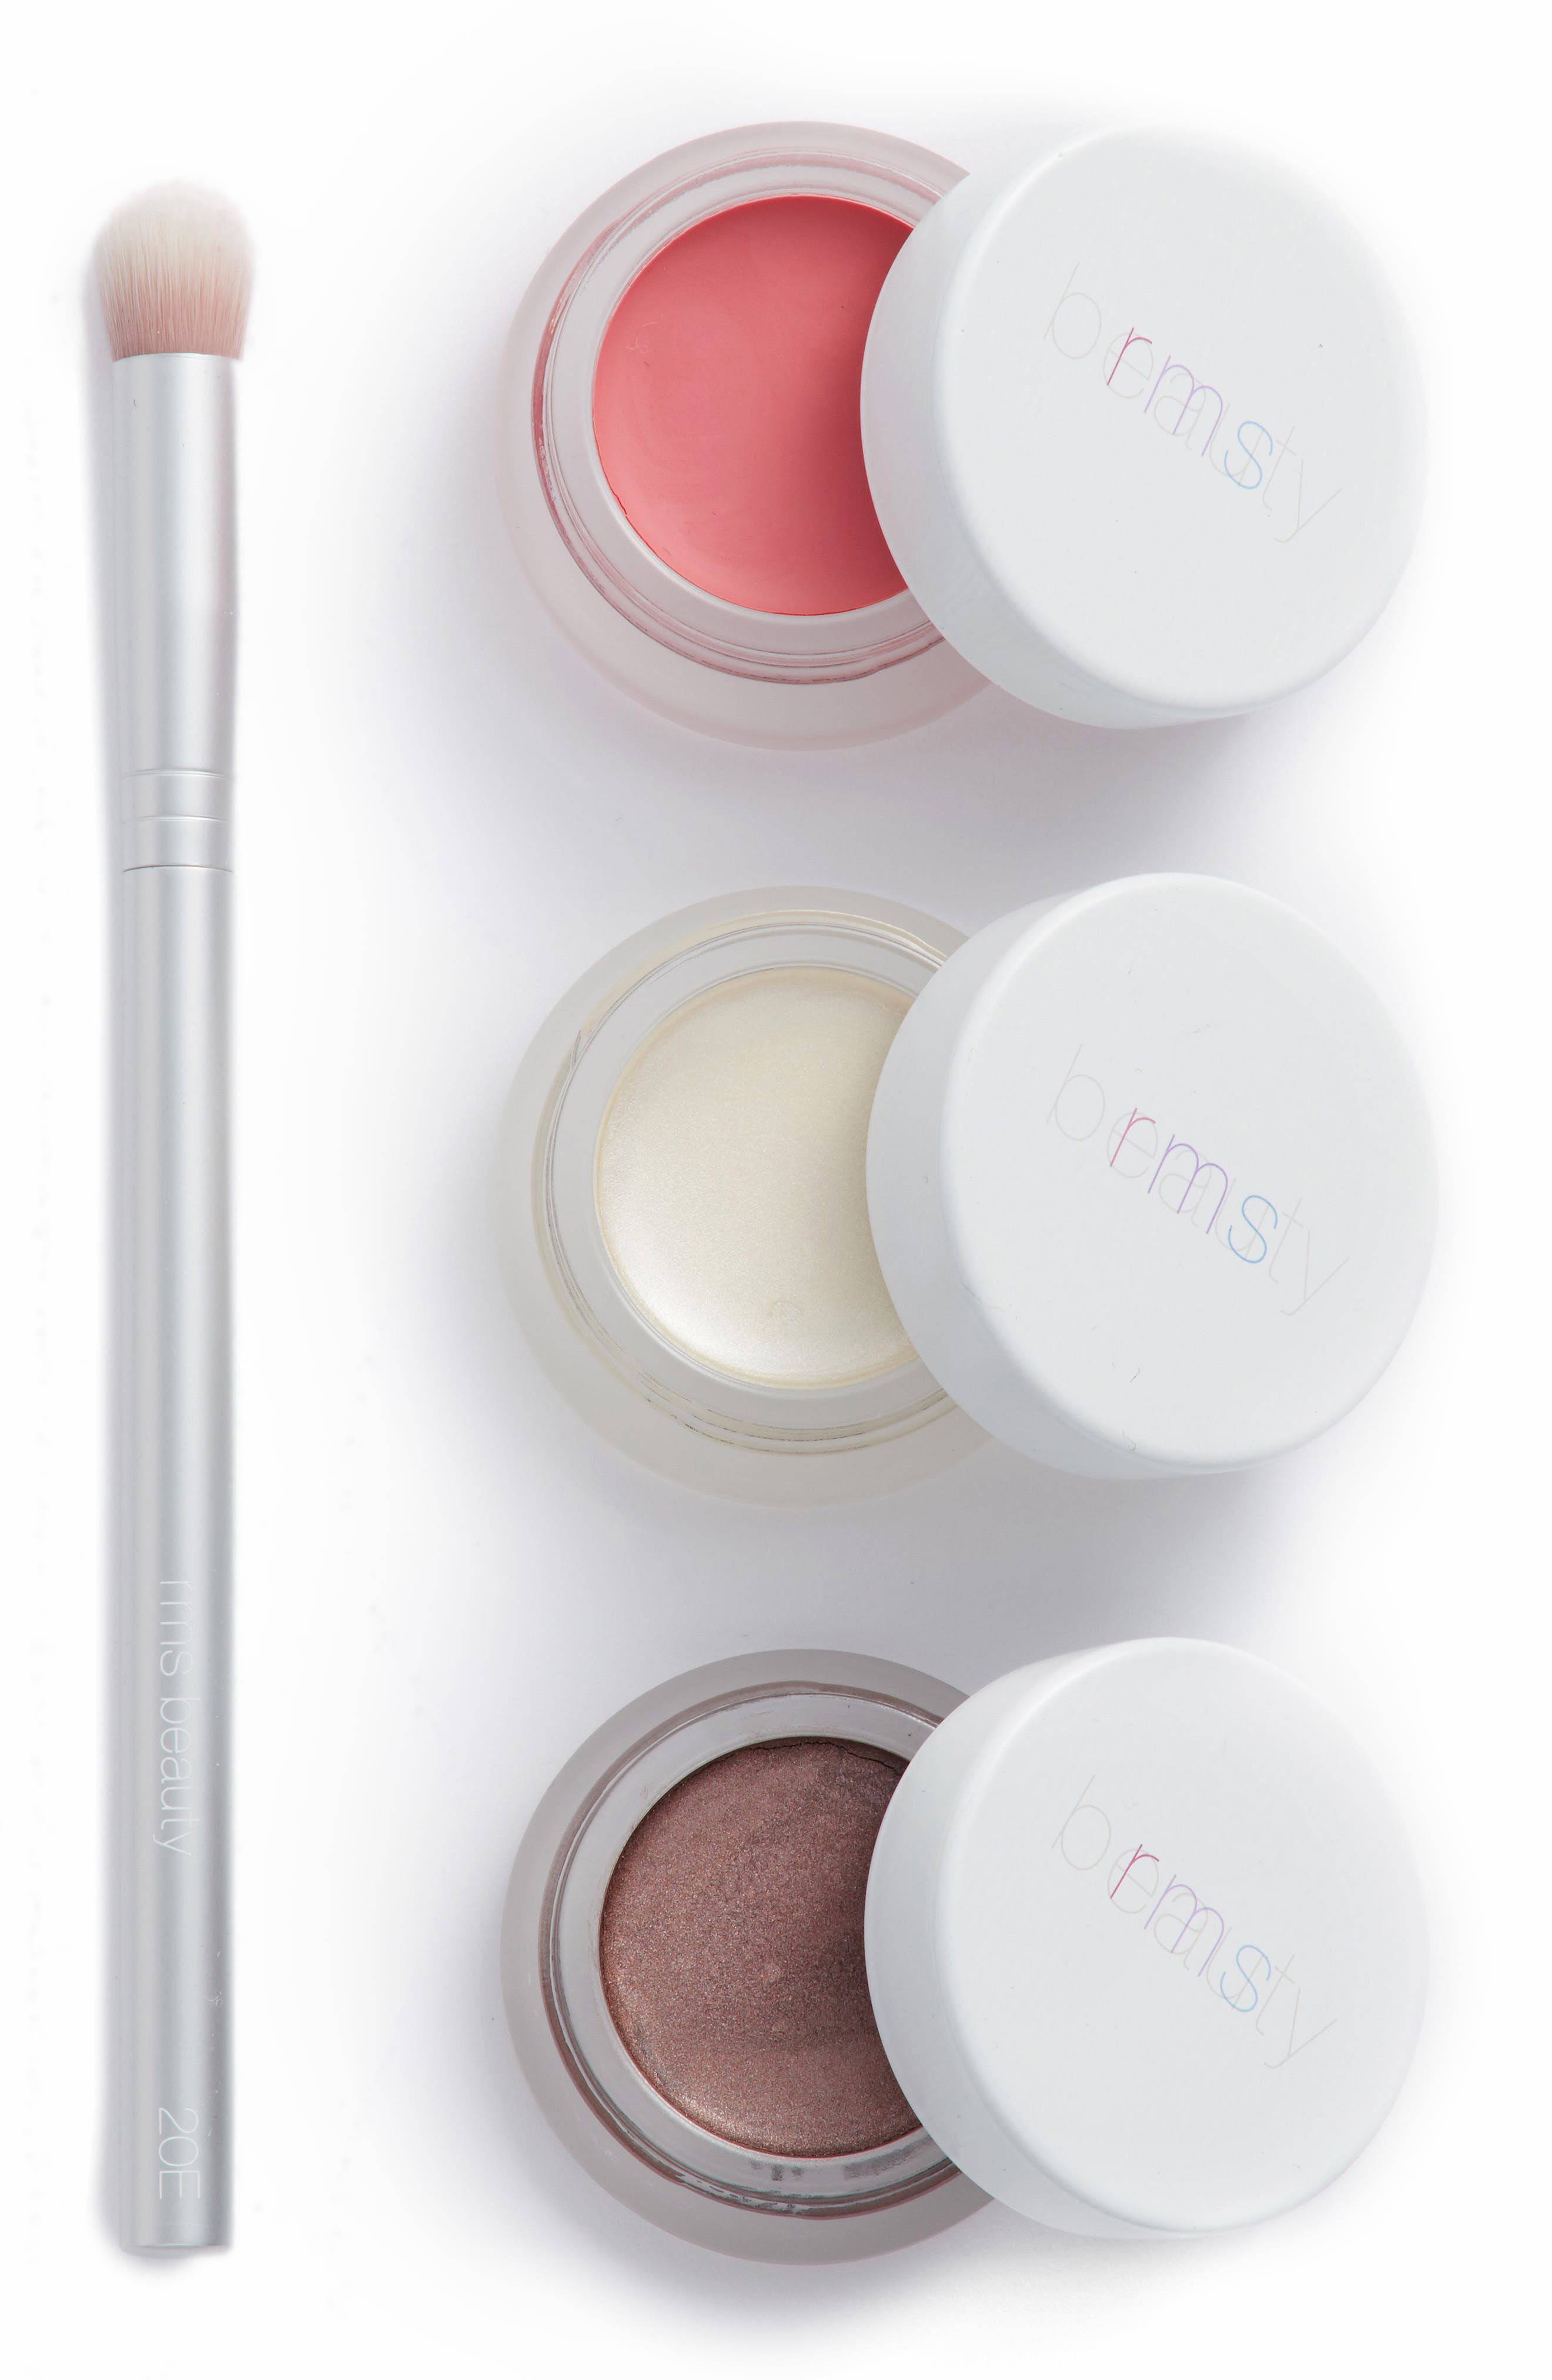 RMS Beauty Glowing Set ($124 Value)